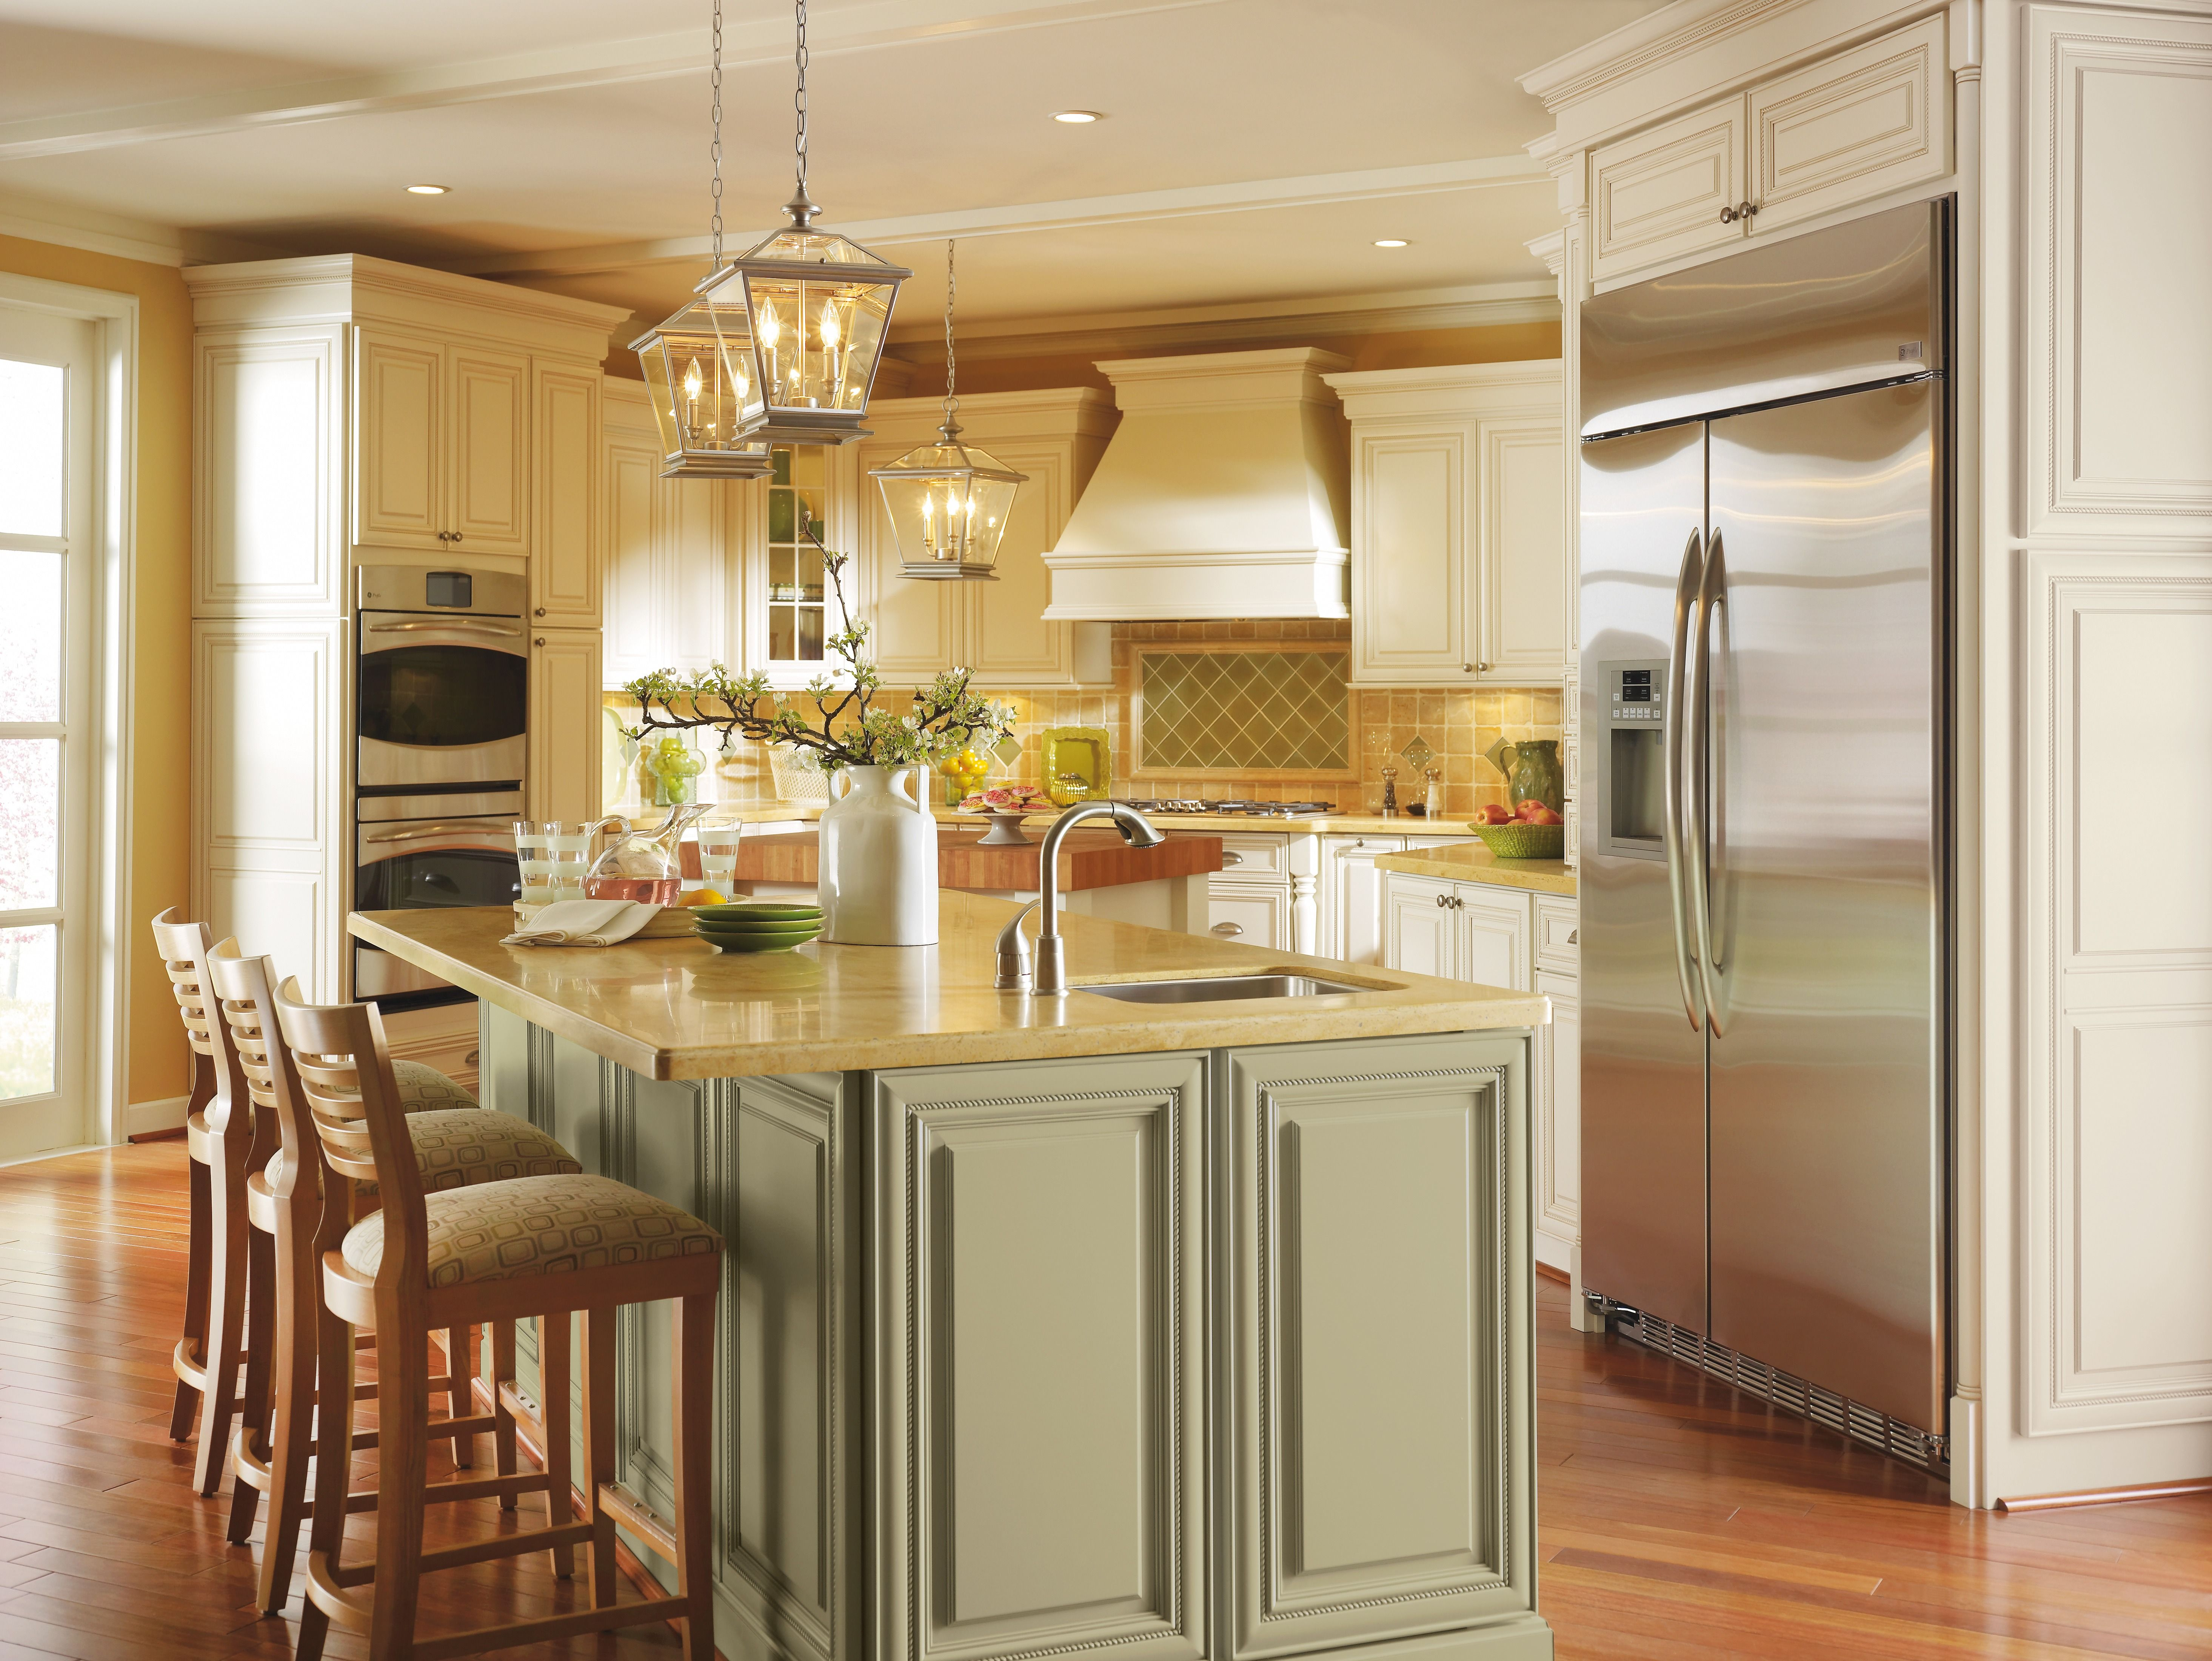 Dynasty By Omega Marries A Traditional And Country Ambiance In This Kitchen With Their Beautiful Kitchen Cabinets Traditional Kitchen Cabinets Omega Cabinetry